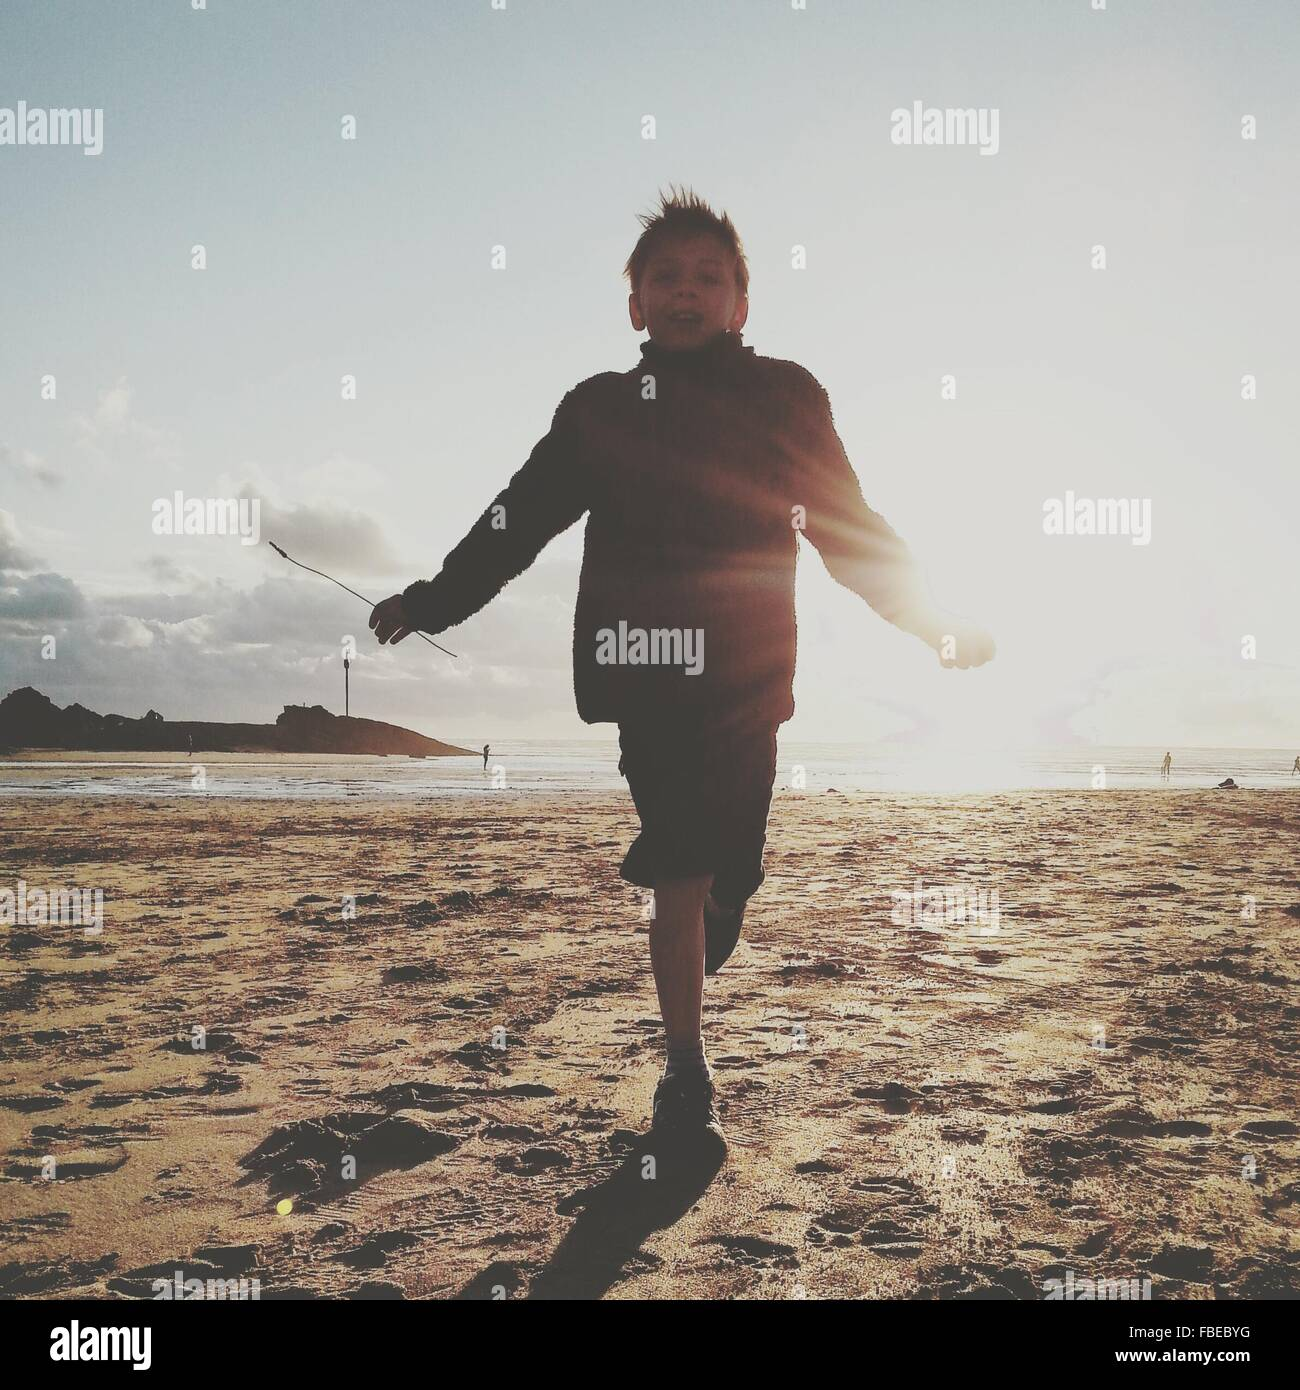 Low Angle View Of Boy Running On Beach Against Sky During Sunny Day - Stock Image